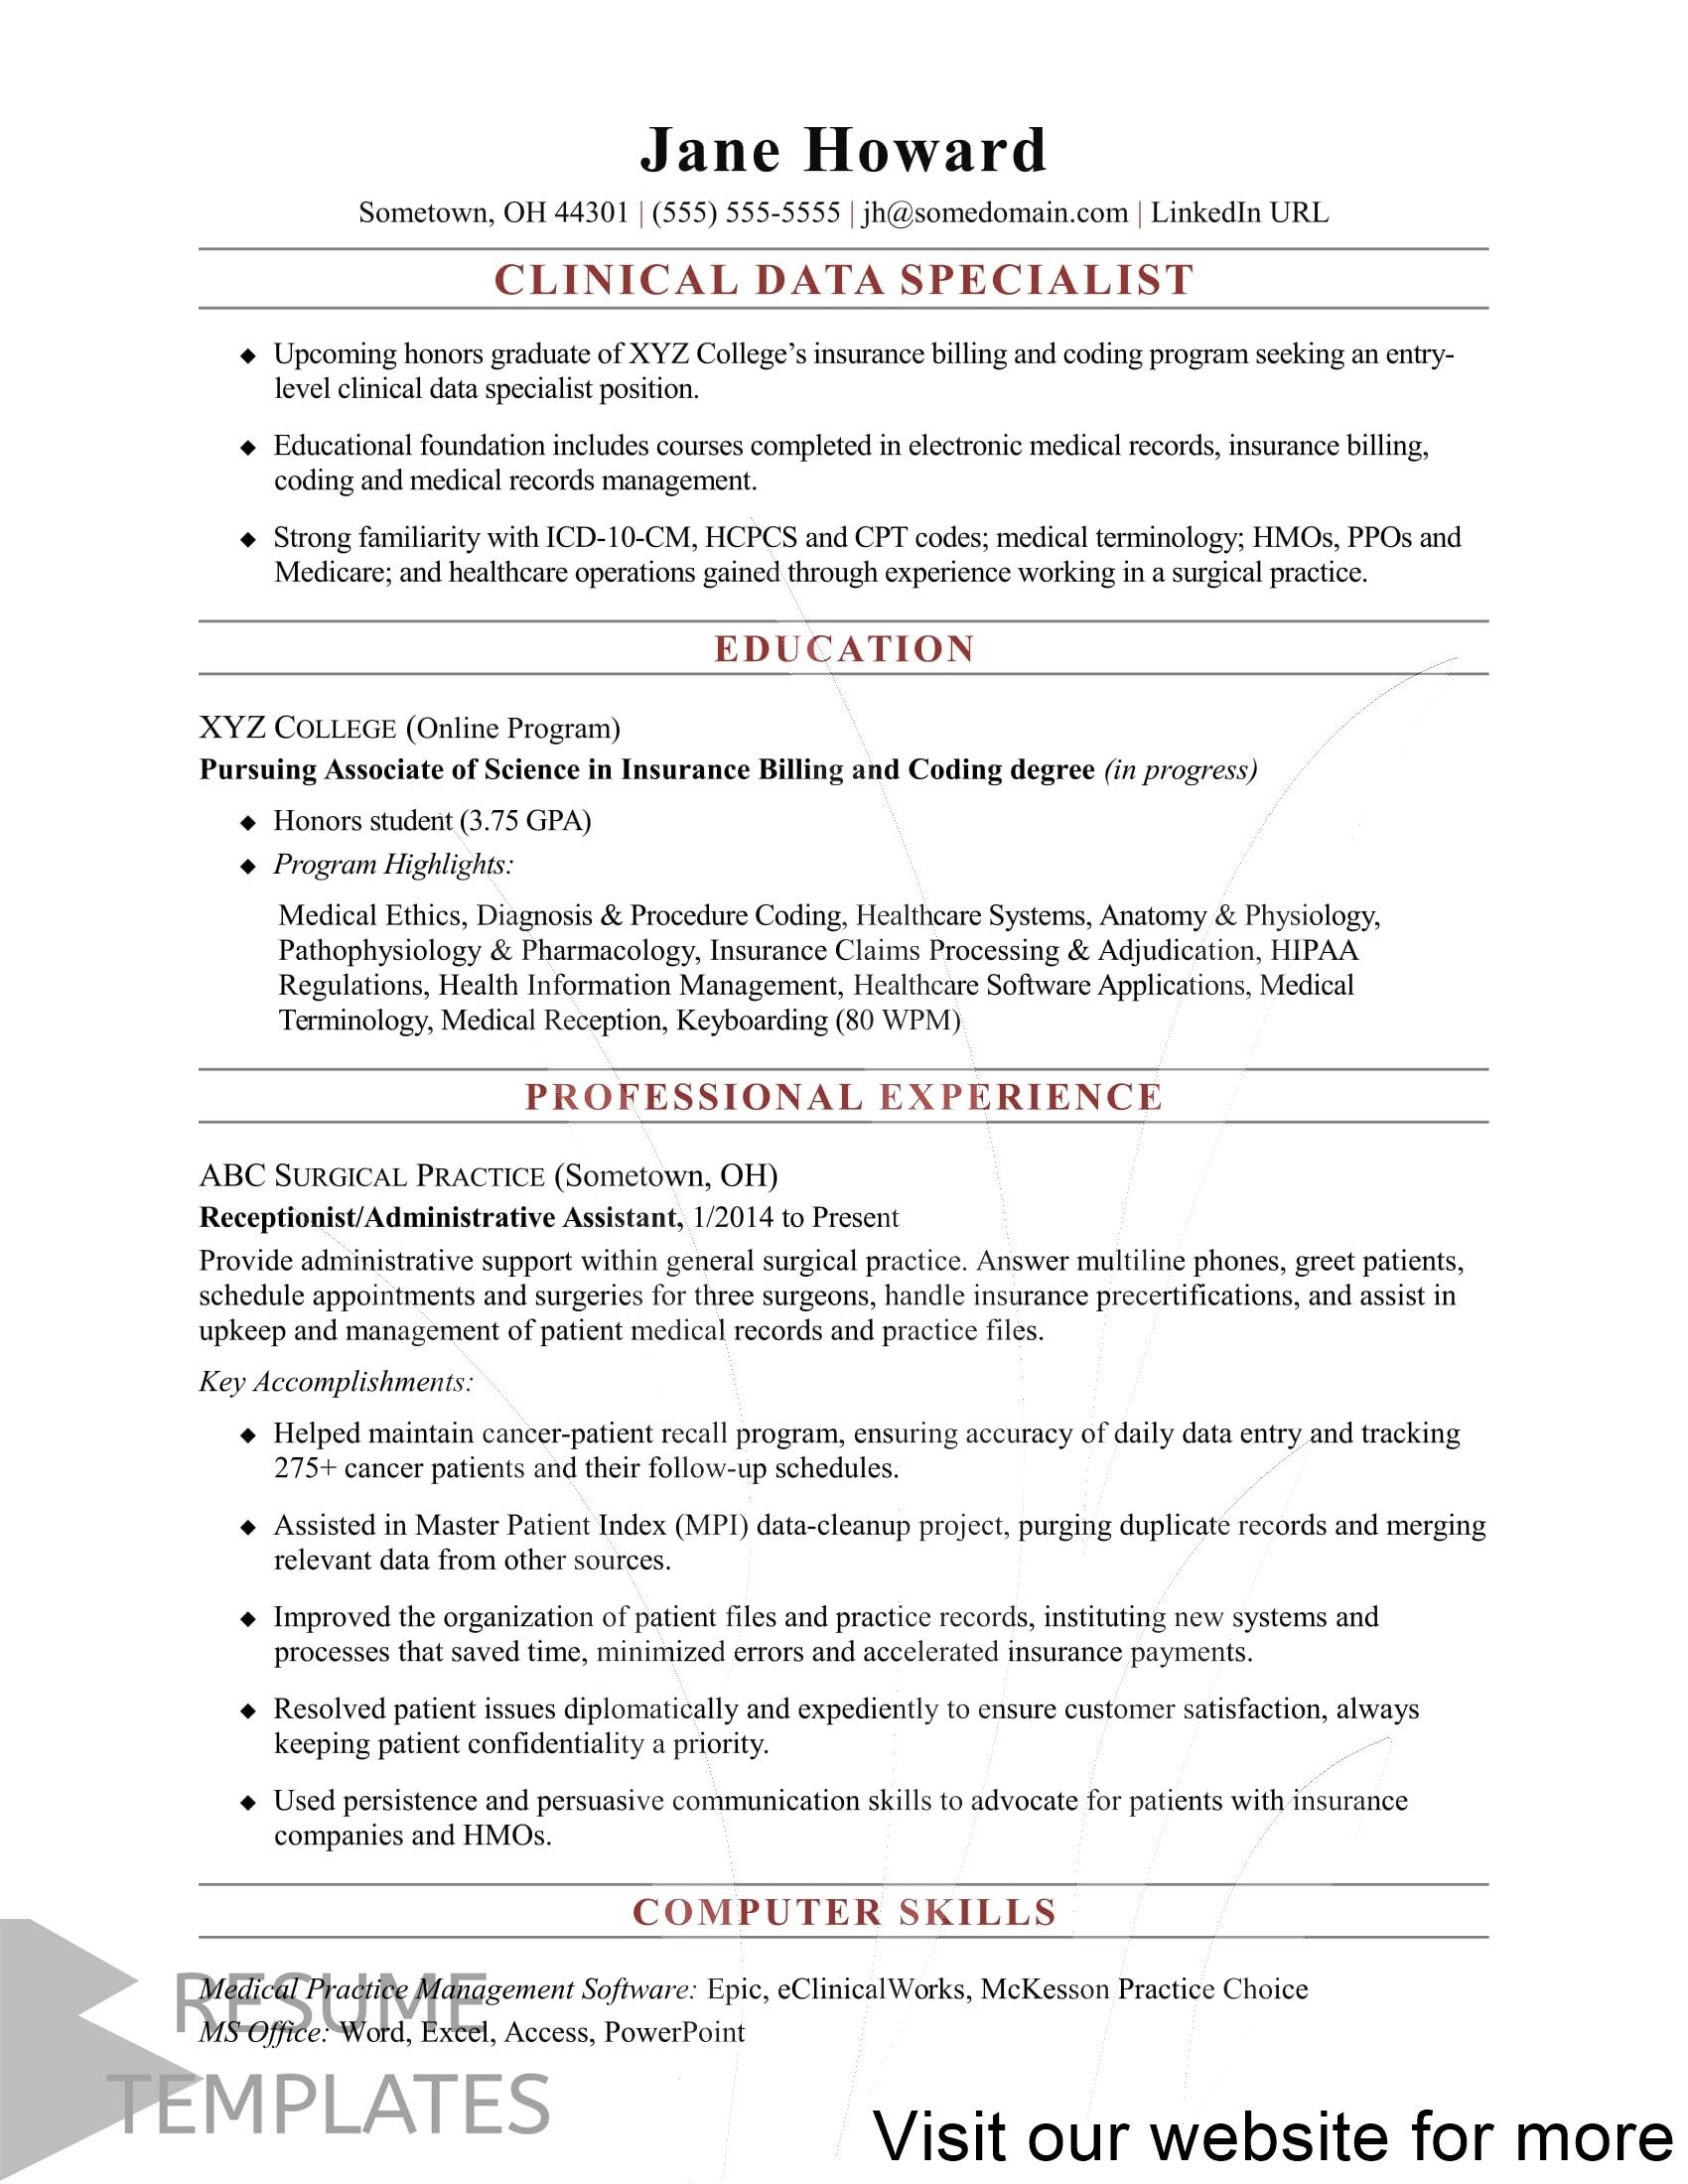 Resume Template Apple Pages In 2020 Job Resume Samples Medical